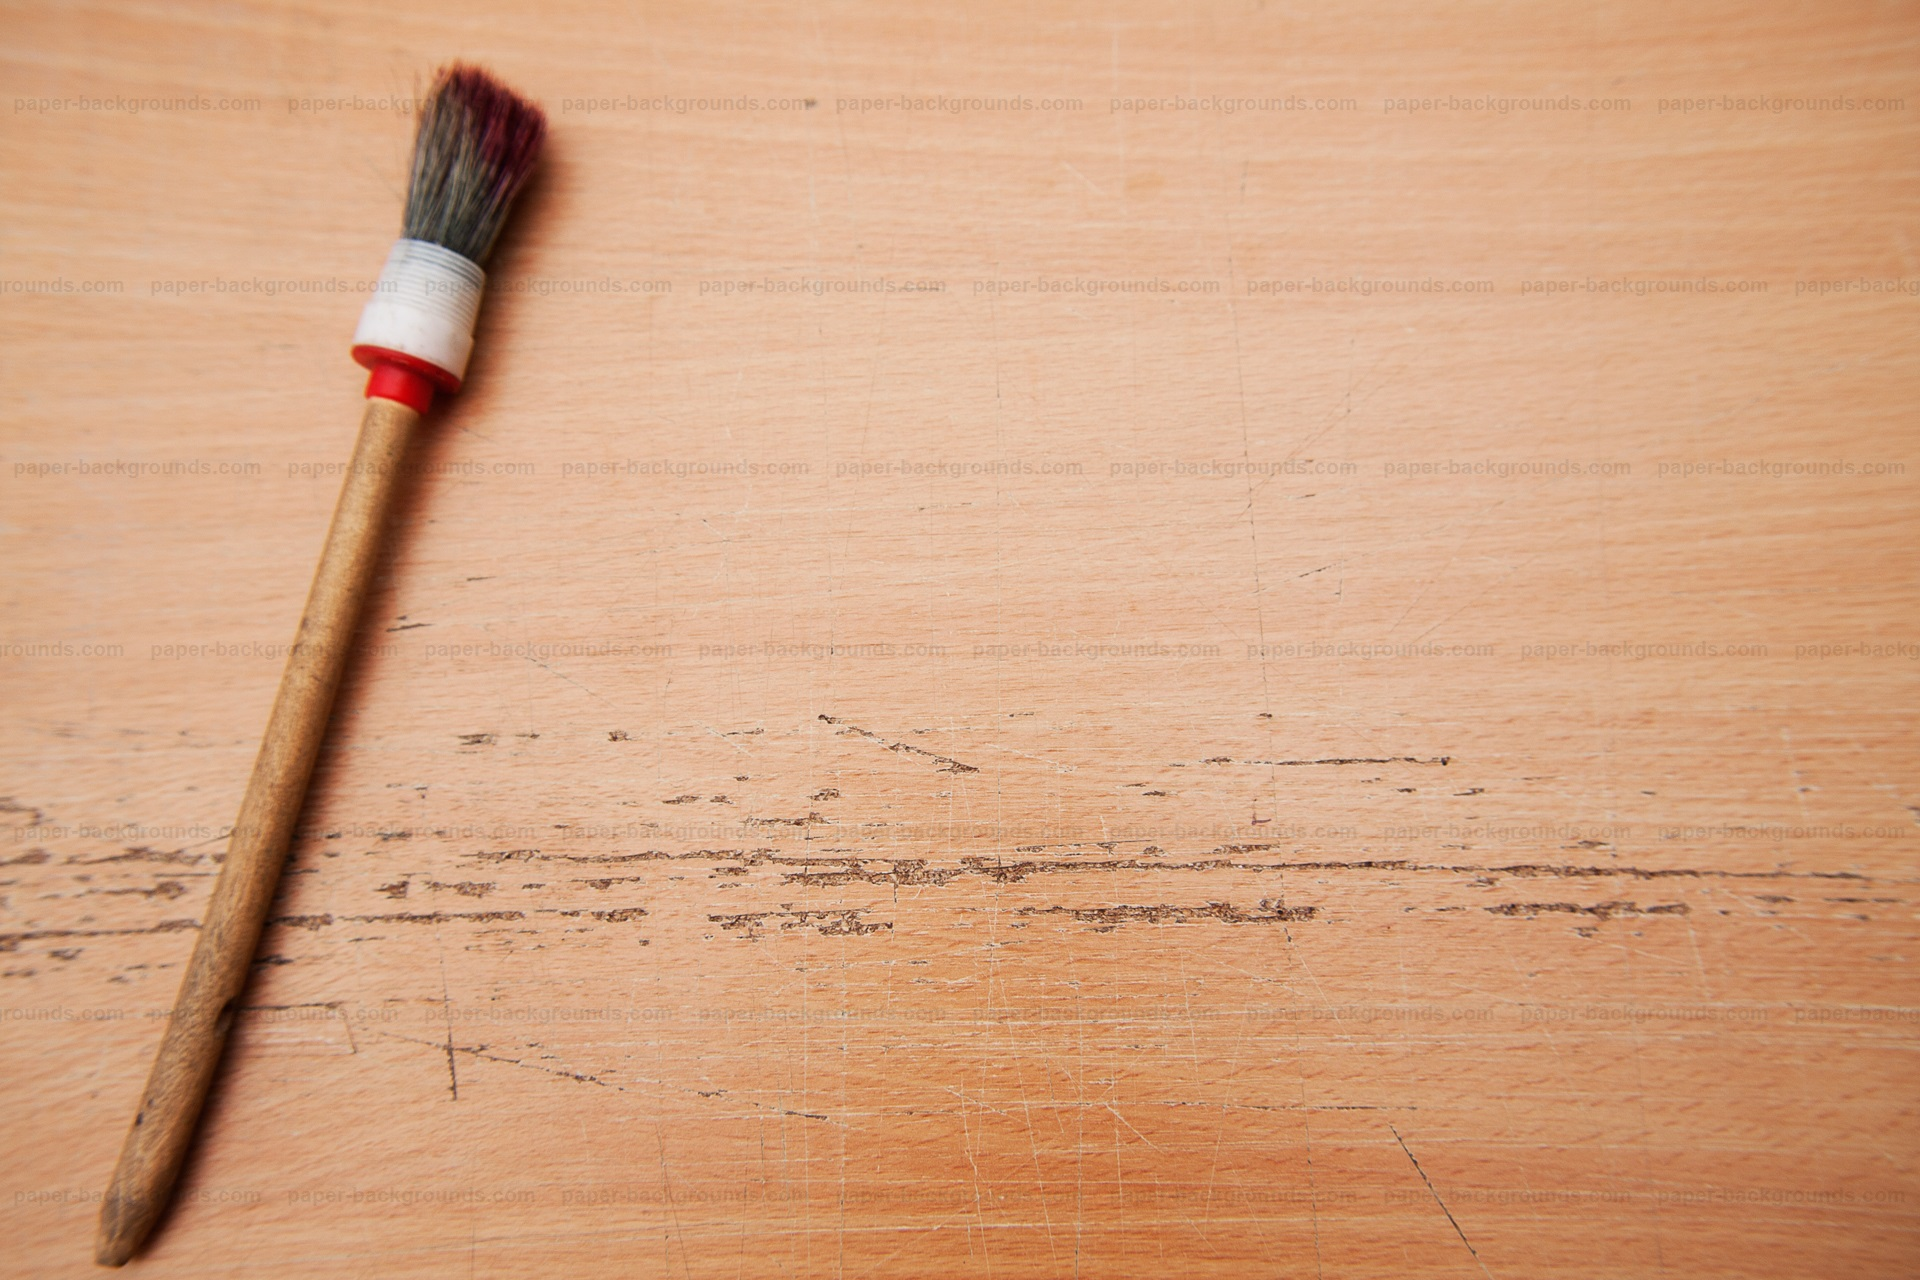 Paint-Brush on Table Mockup Background HD